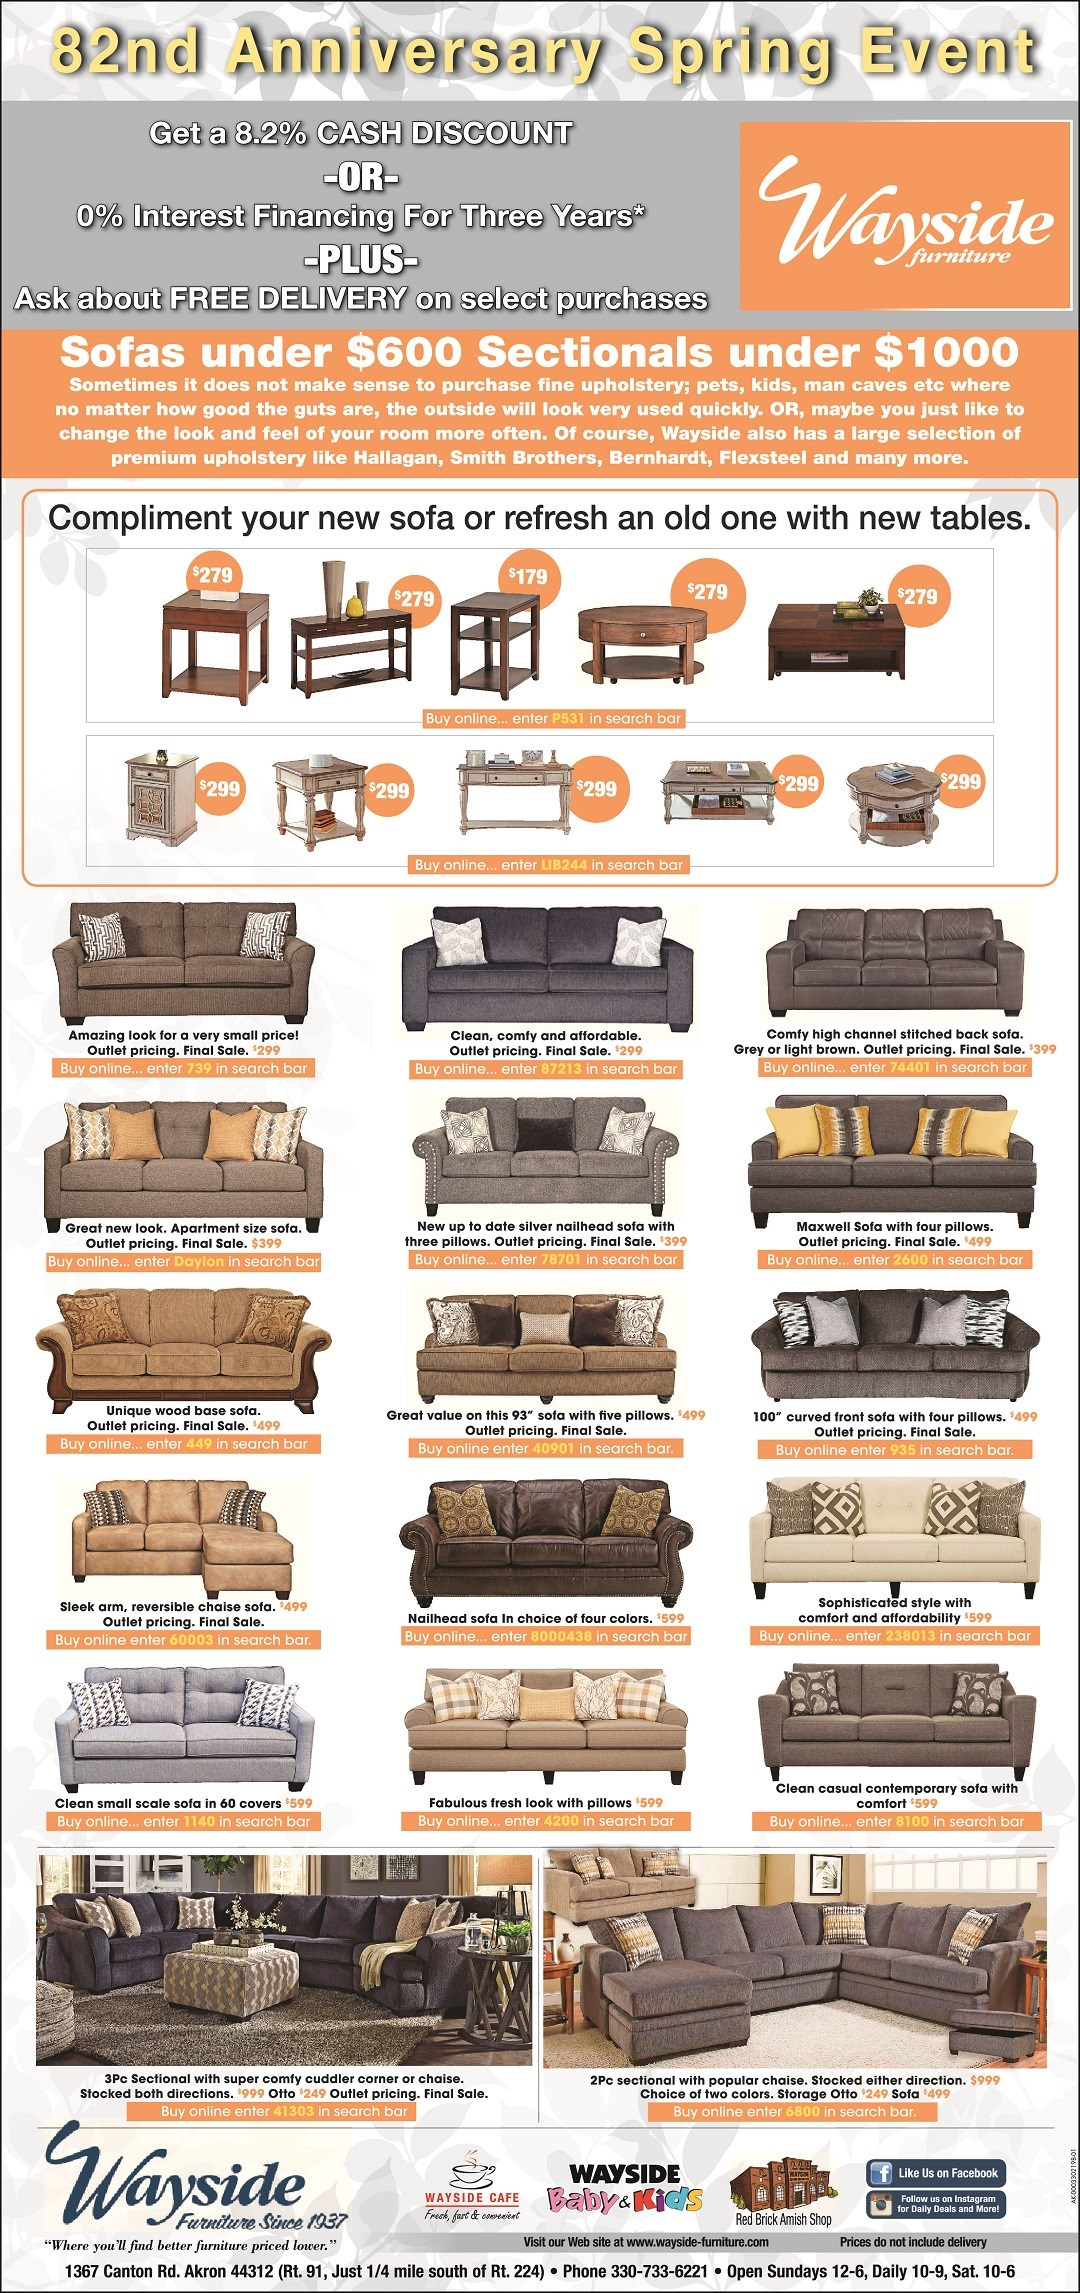 sofas, chaise sofa, sectionals, occasional tables, end table, cocktail table, sofa table, free delivery